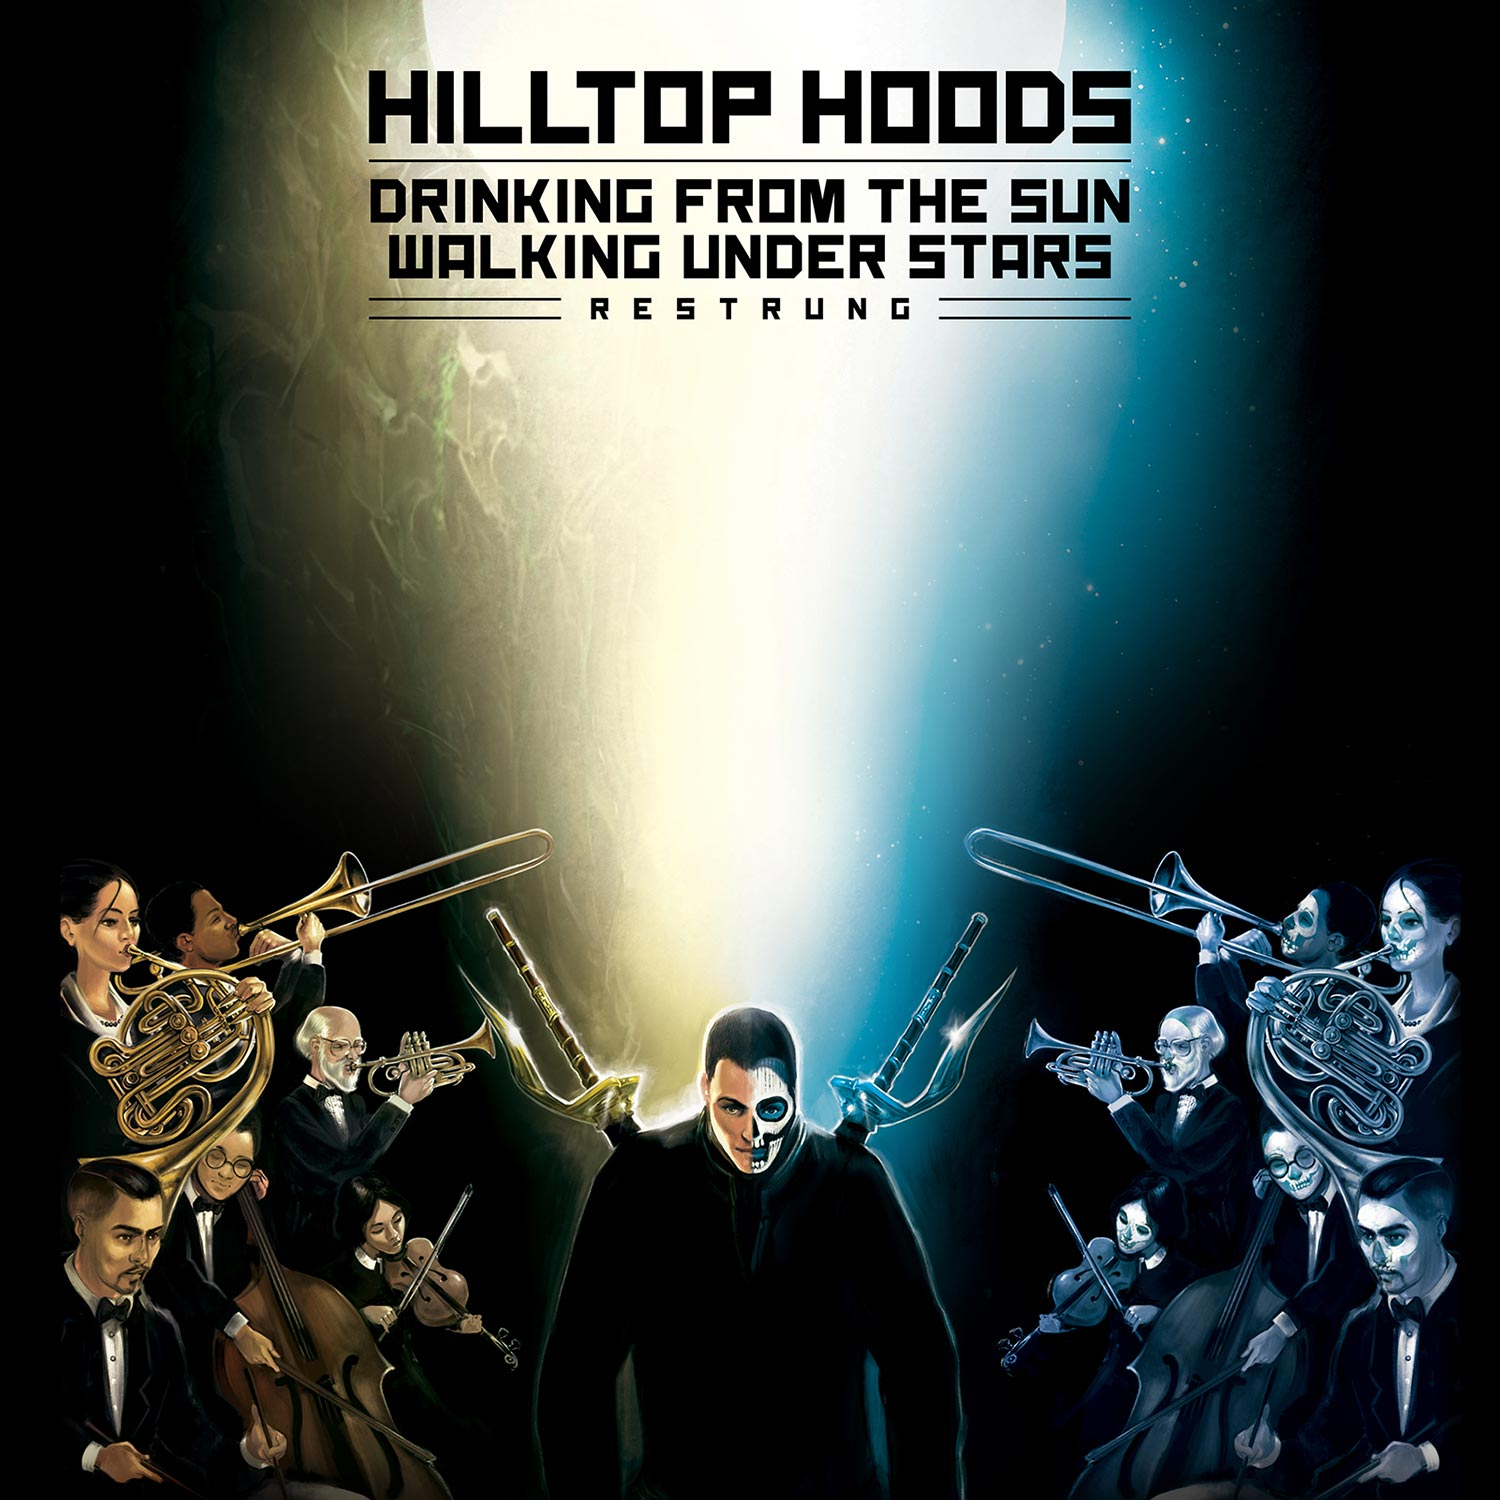 HILLTOP HOODS: DRINKING FROM THE SUN, WALKING UNDER STARS RESTRUNG